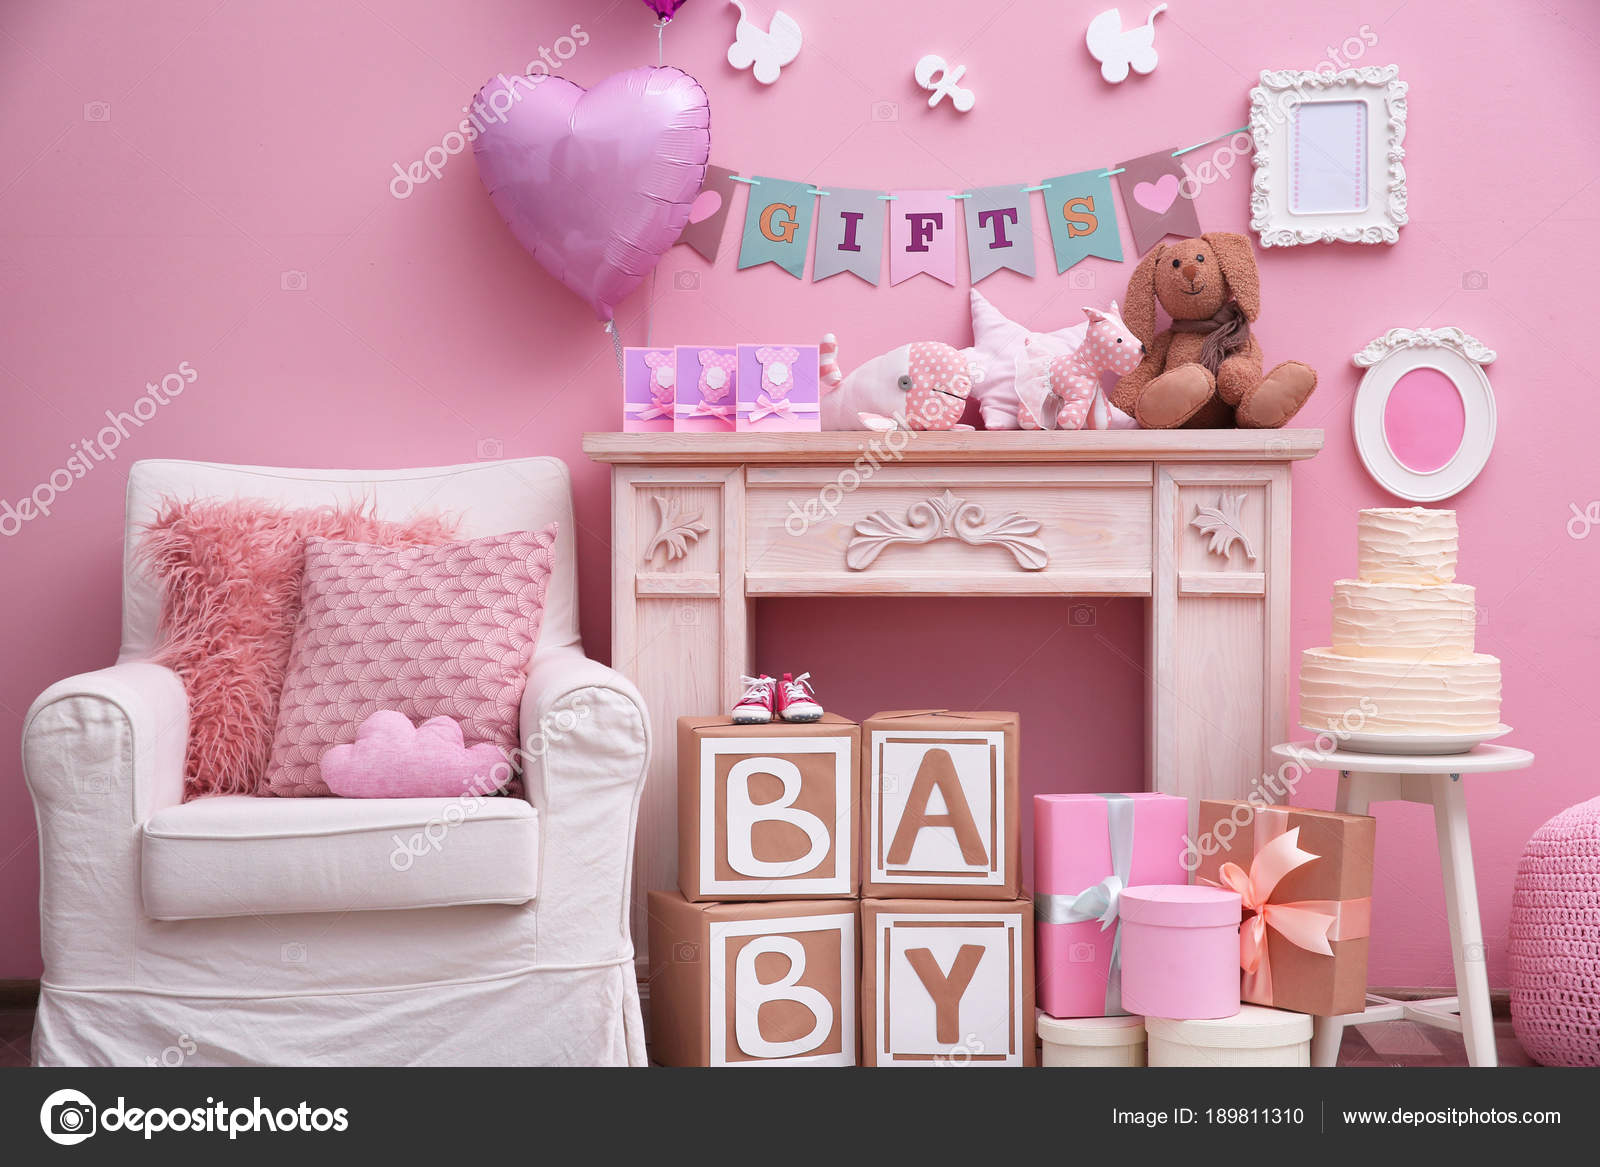 Pictures Baby Shower Hall Decorations Beautiful